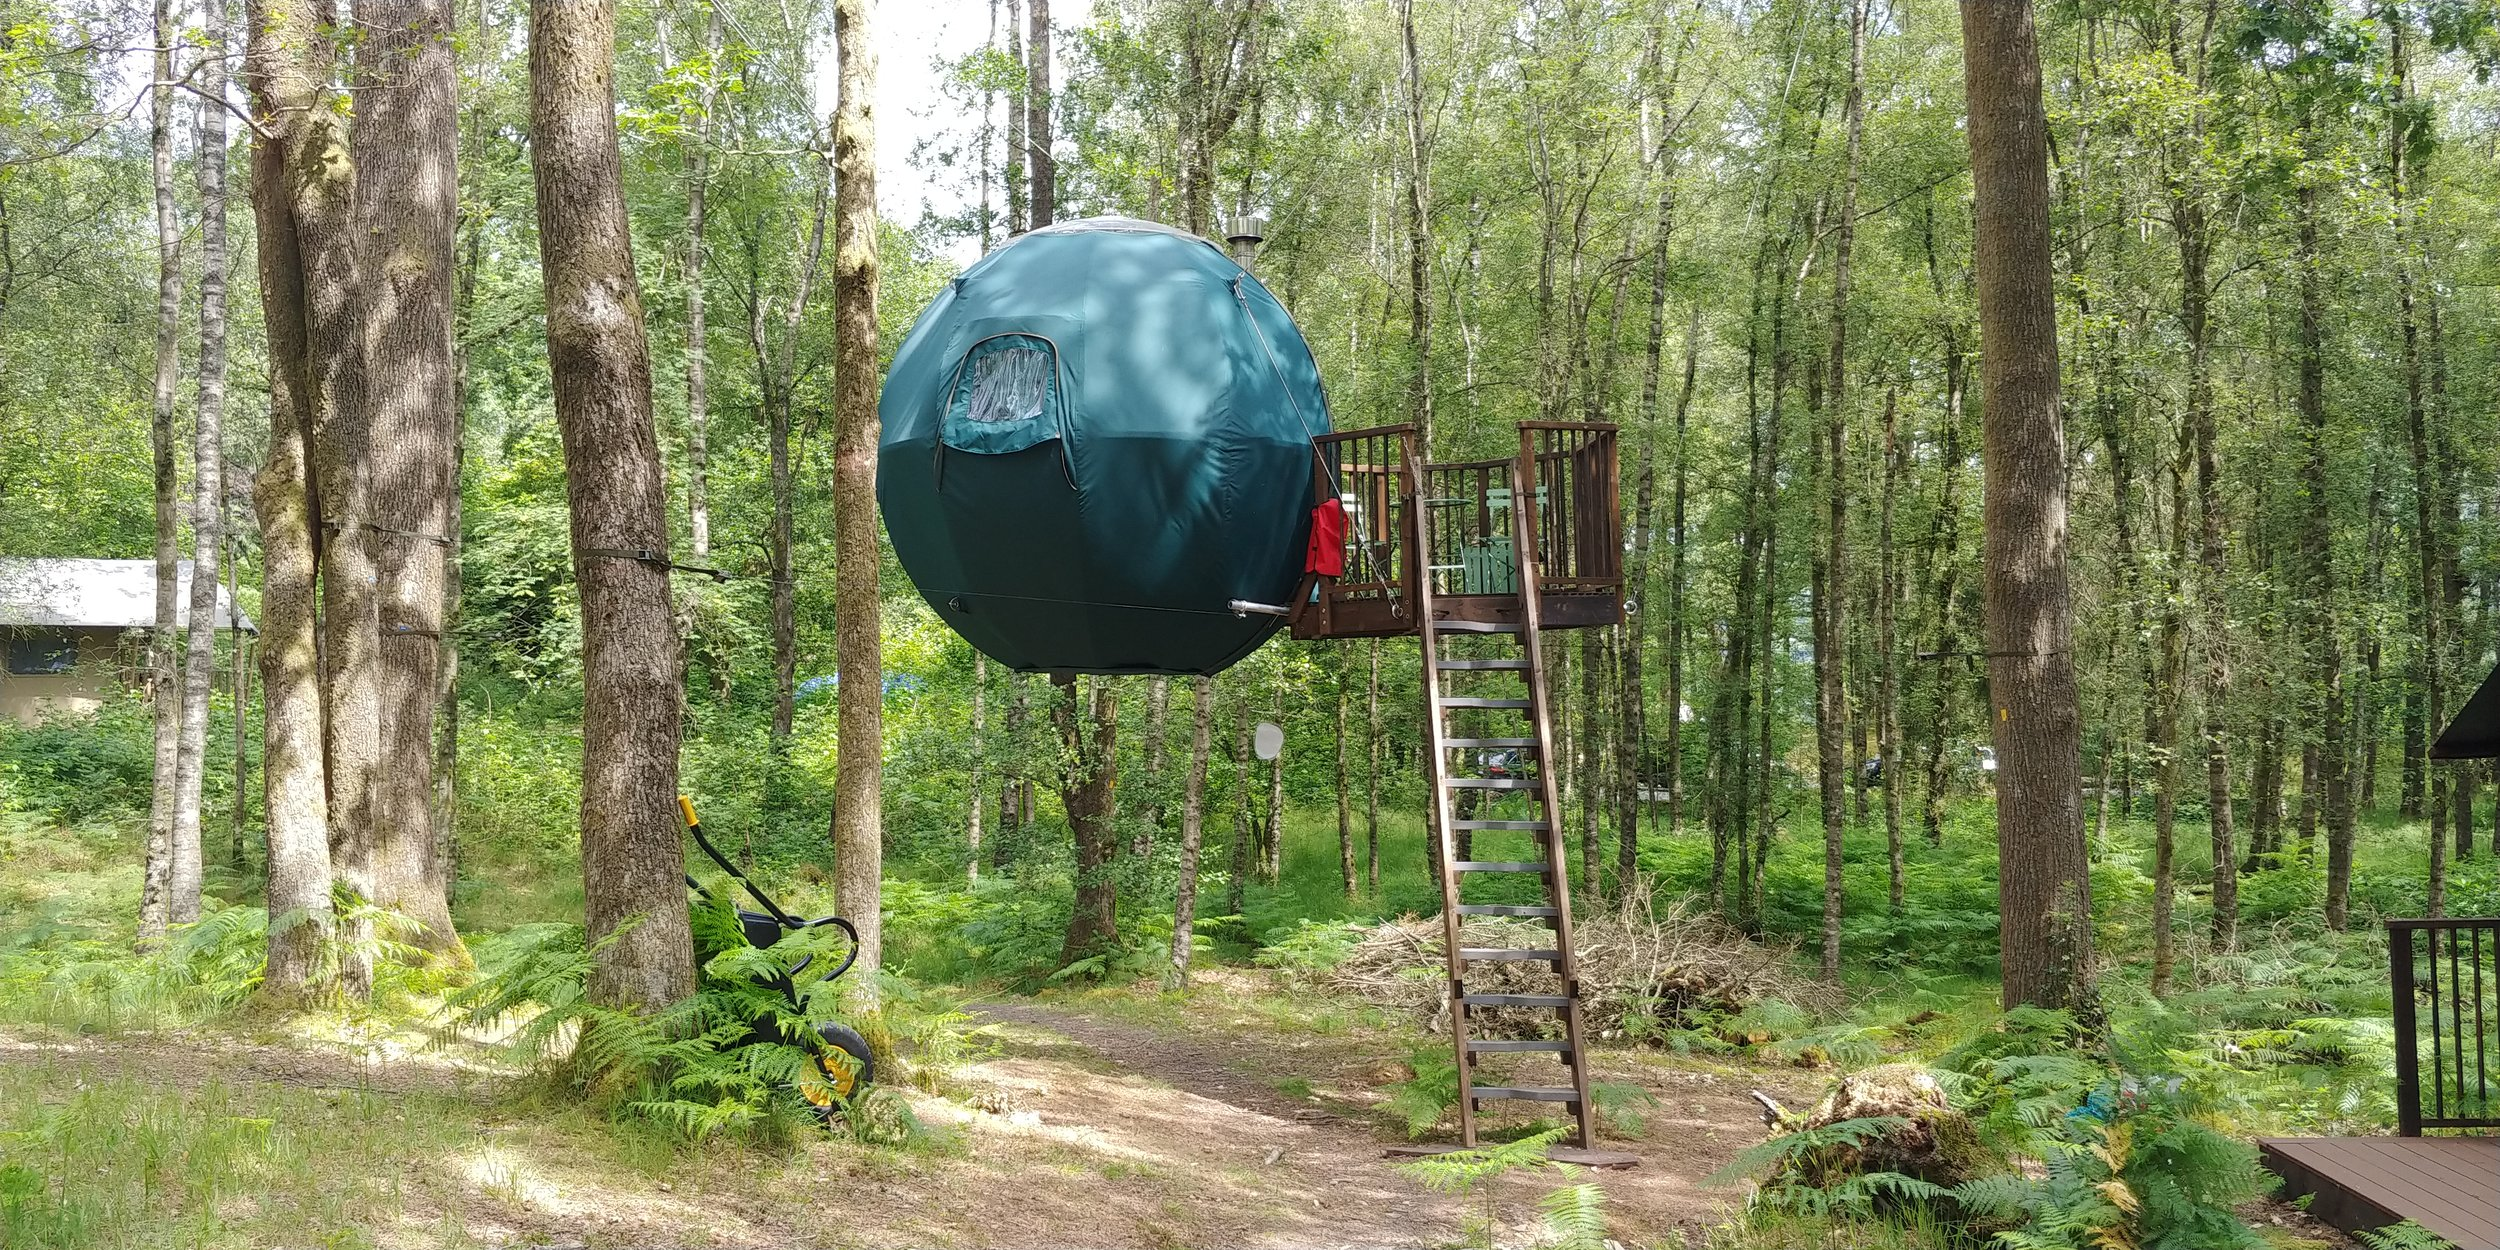 Suspended camping spheres.